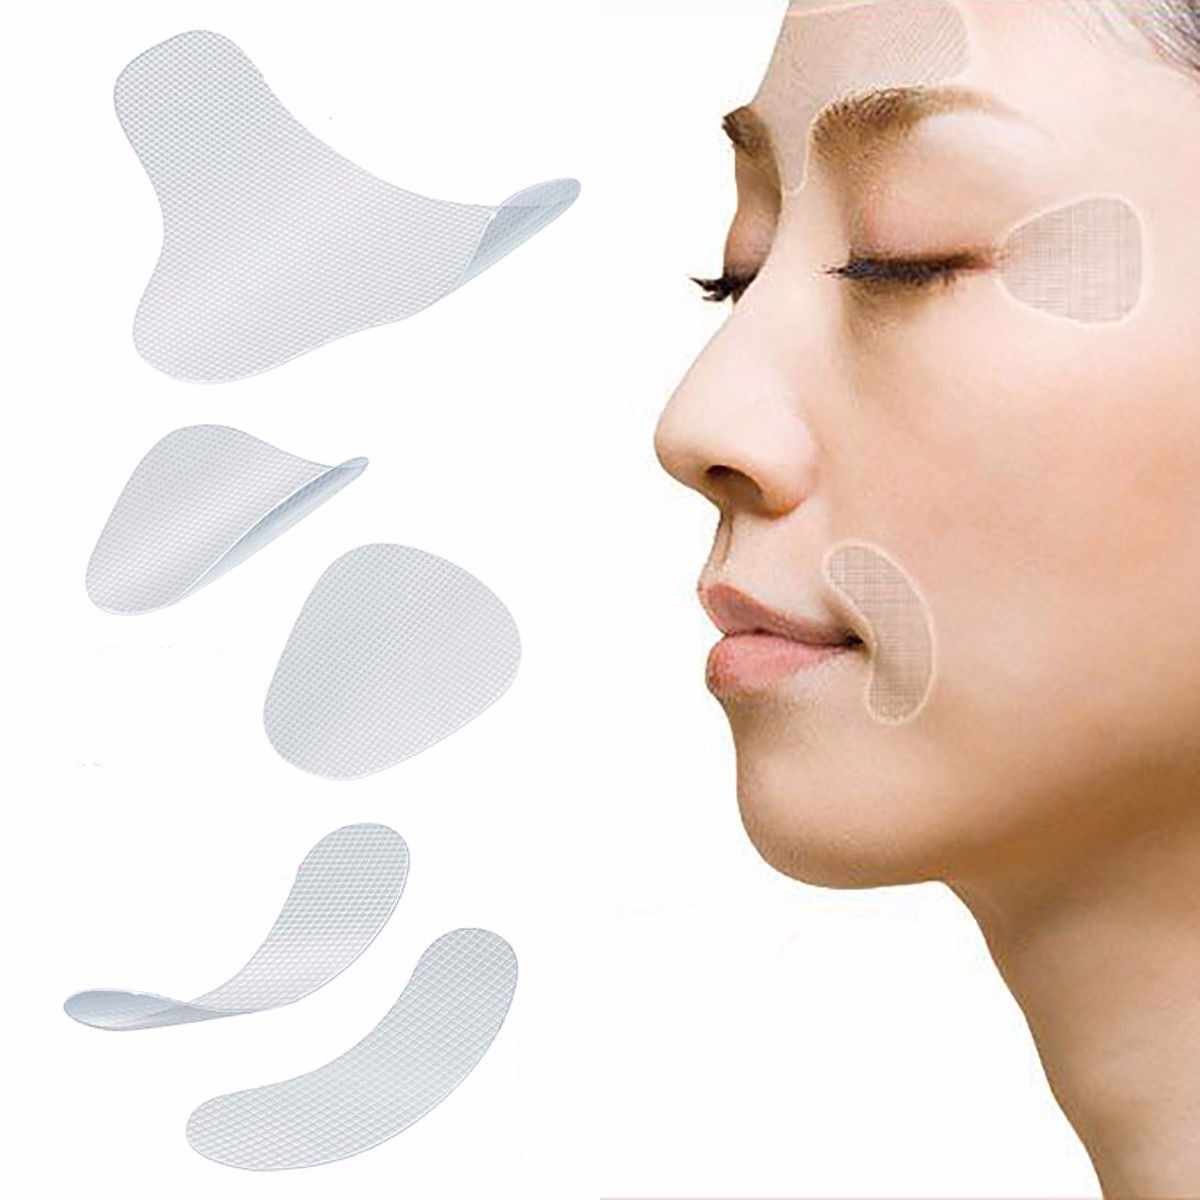 Hot Sale 12/24/27Pcs Thin Face Stickers Facial Anti-Wrinkle Patches Smile Line Wrinkle Sagging Skin Lift Up Tape Tools